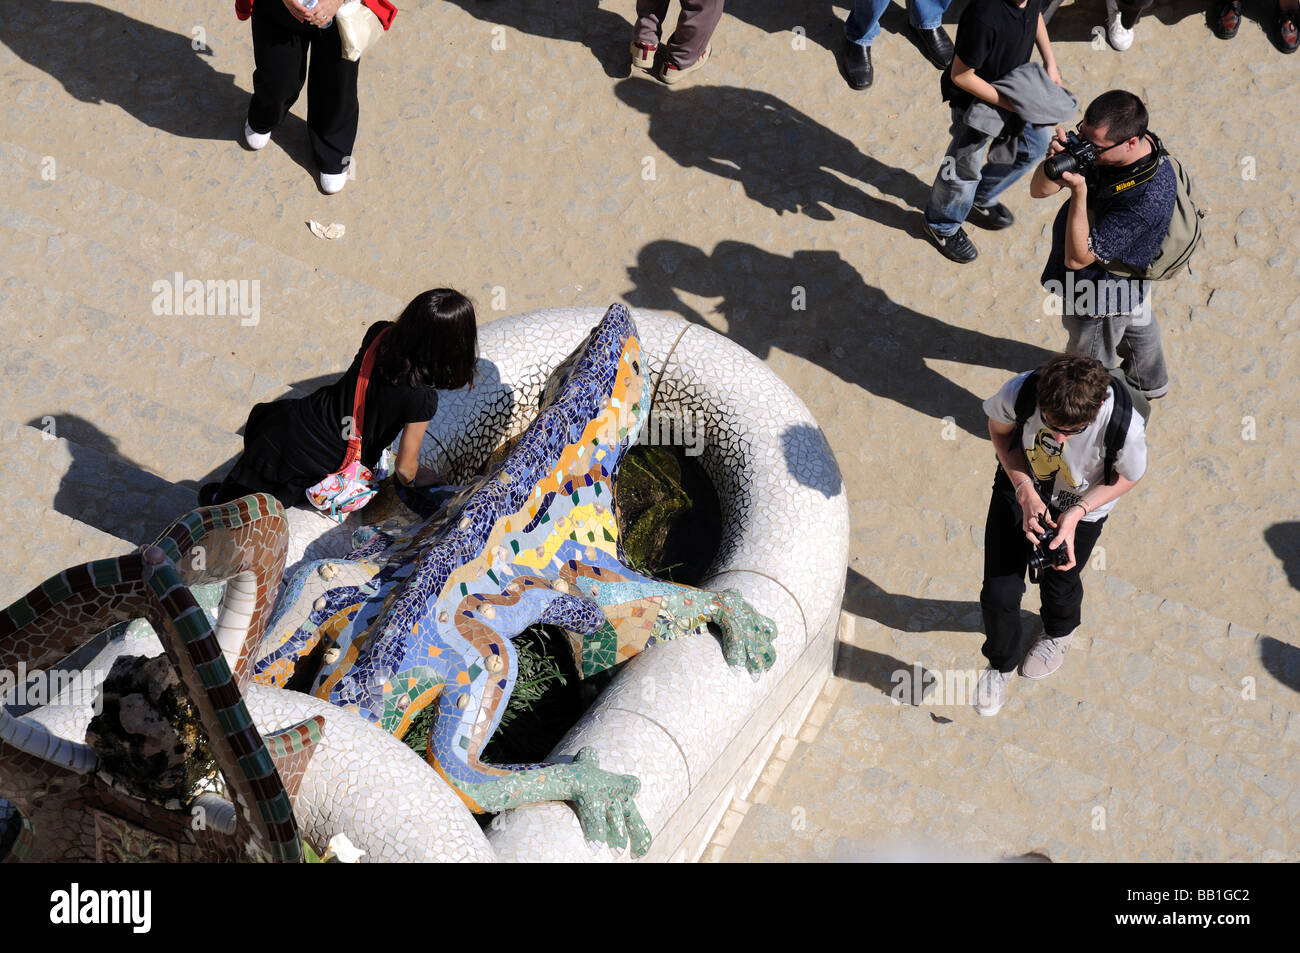 Tourists at Antoni Gaudis Dragon Sculpture in Parc Güell, Barcelona Spain - Stock Image